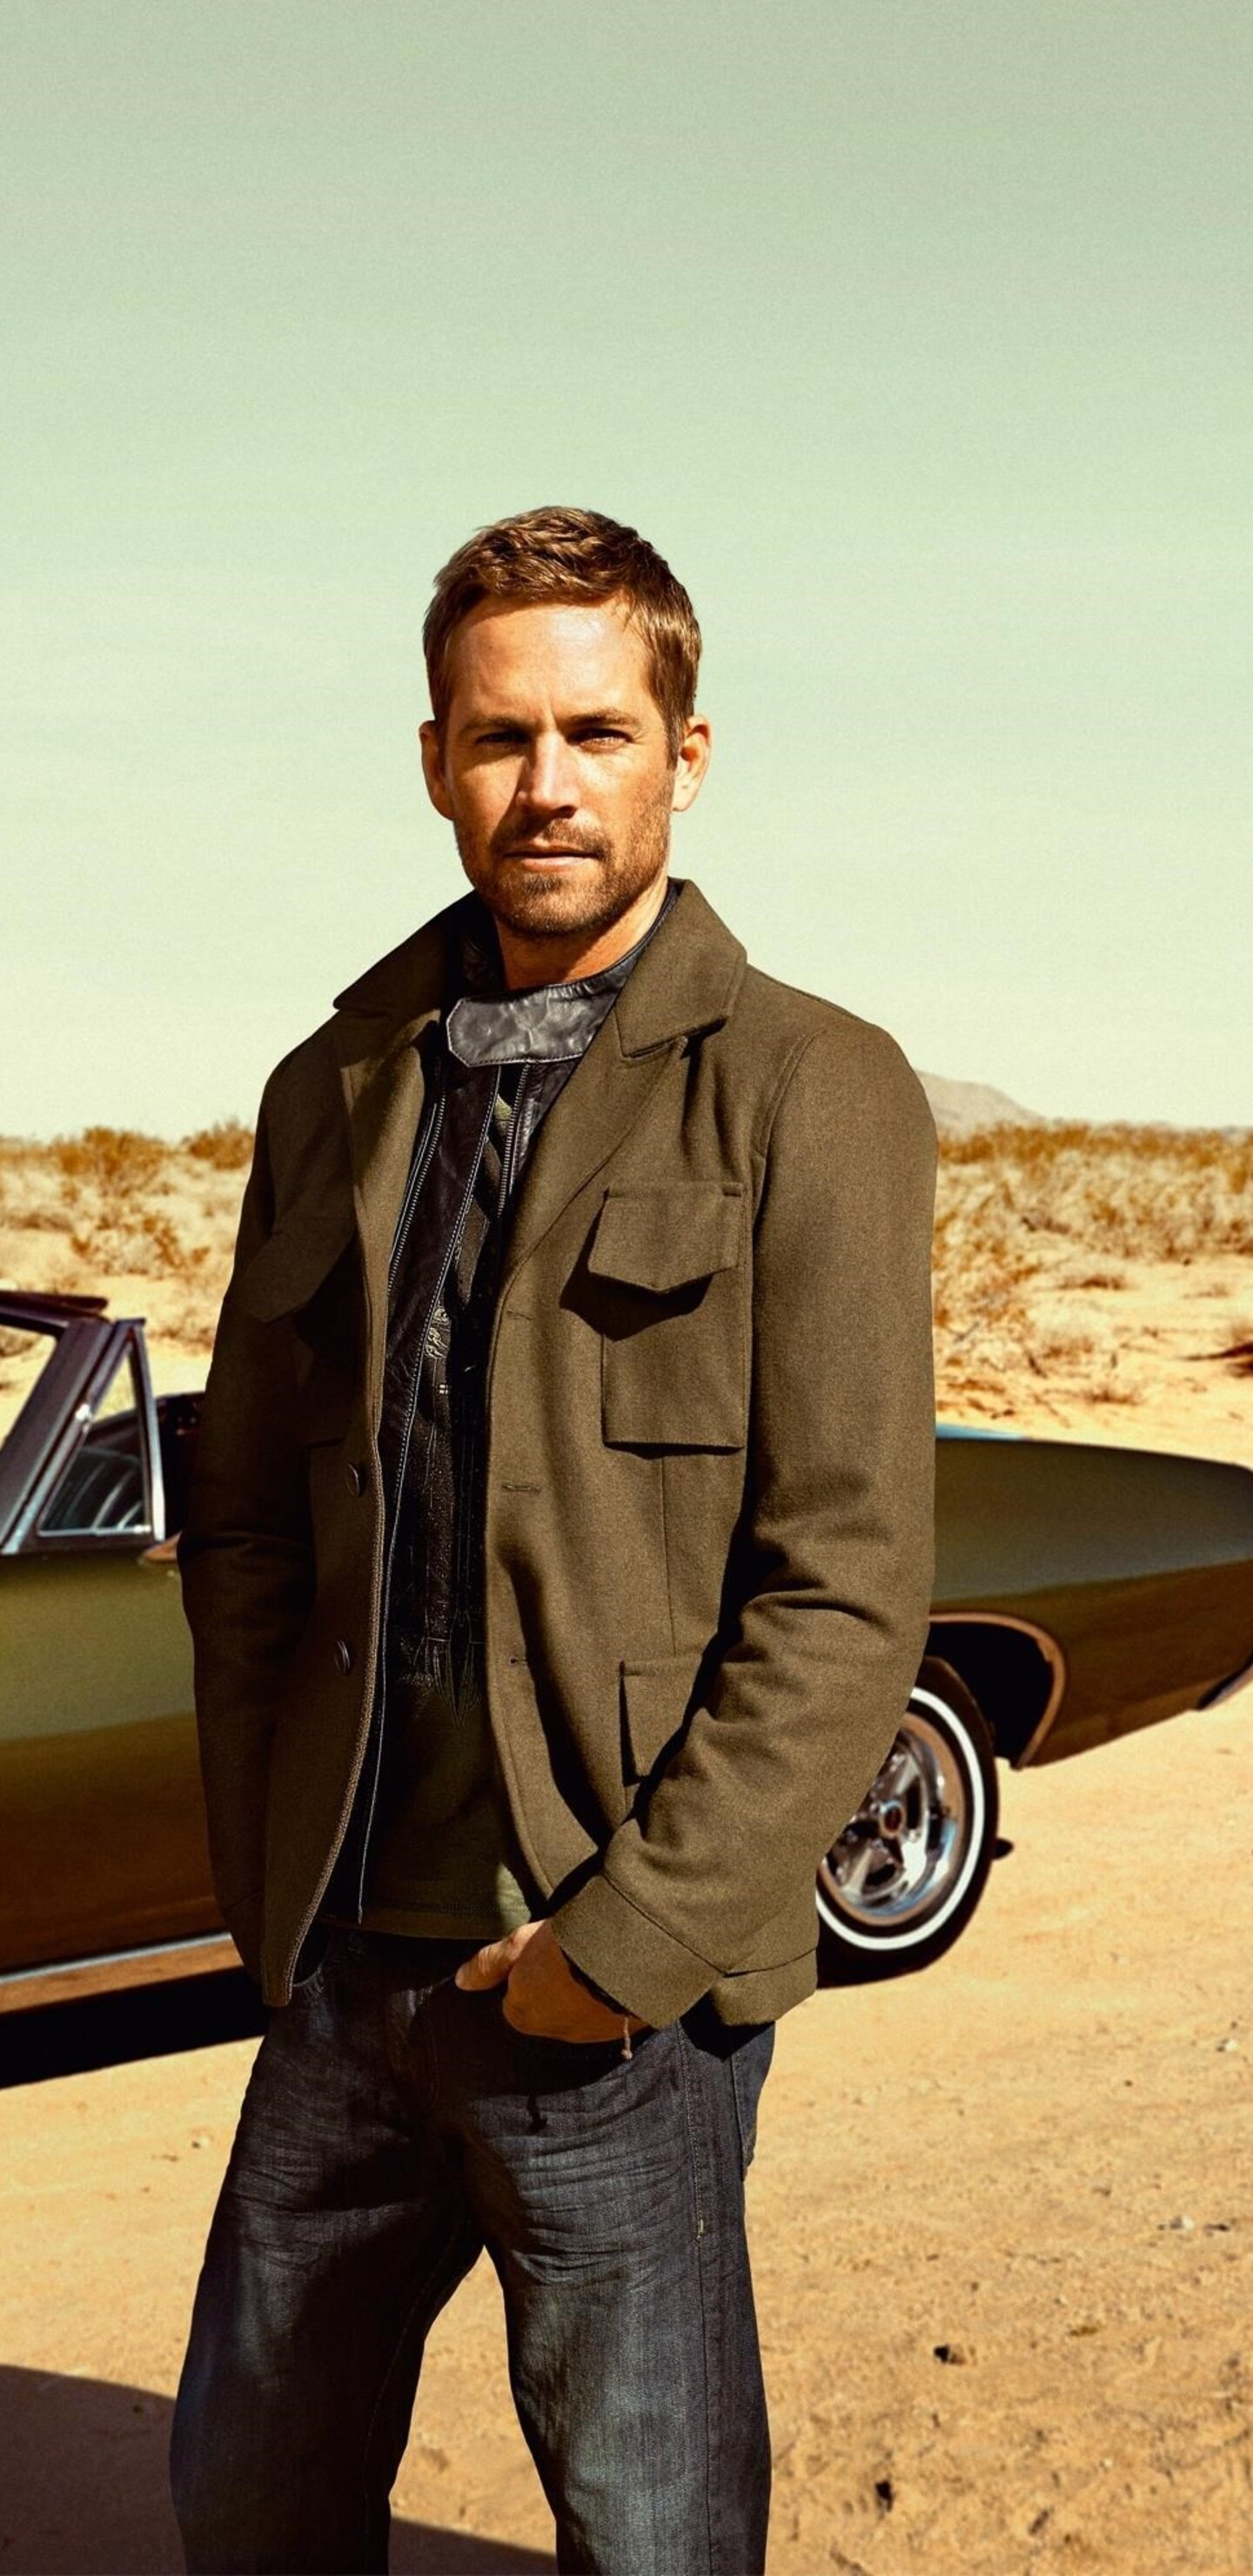 1440x2960 paul walker with cars samsung galaxy s8,s8+ ,note 8 qhd hd